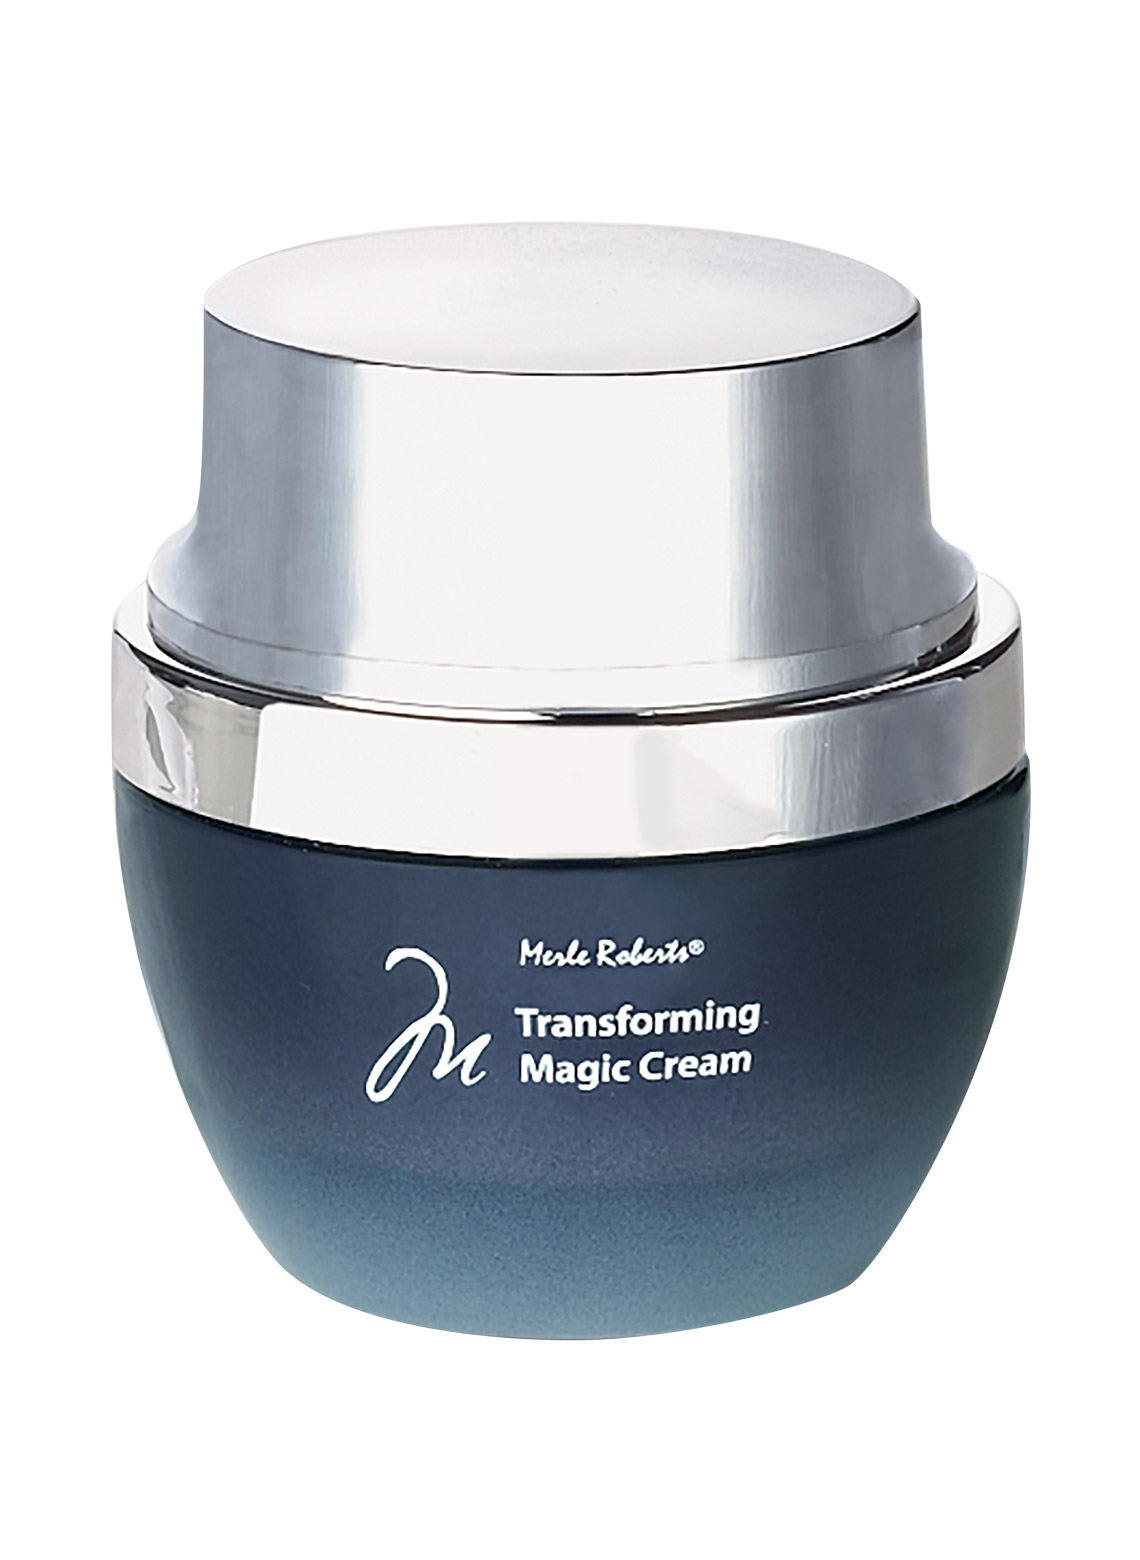 Merle Roberts' Magic Cream